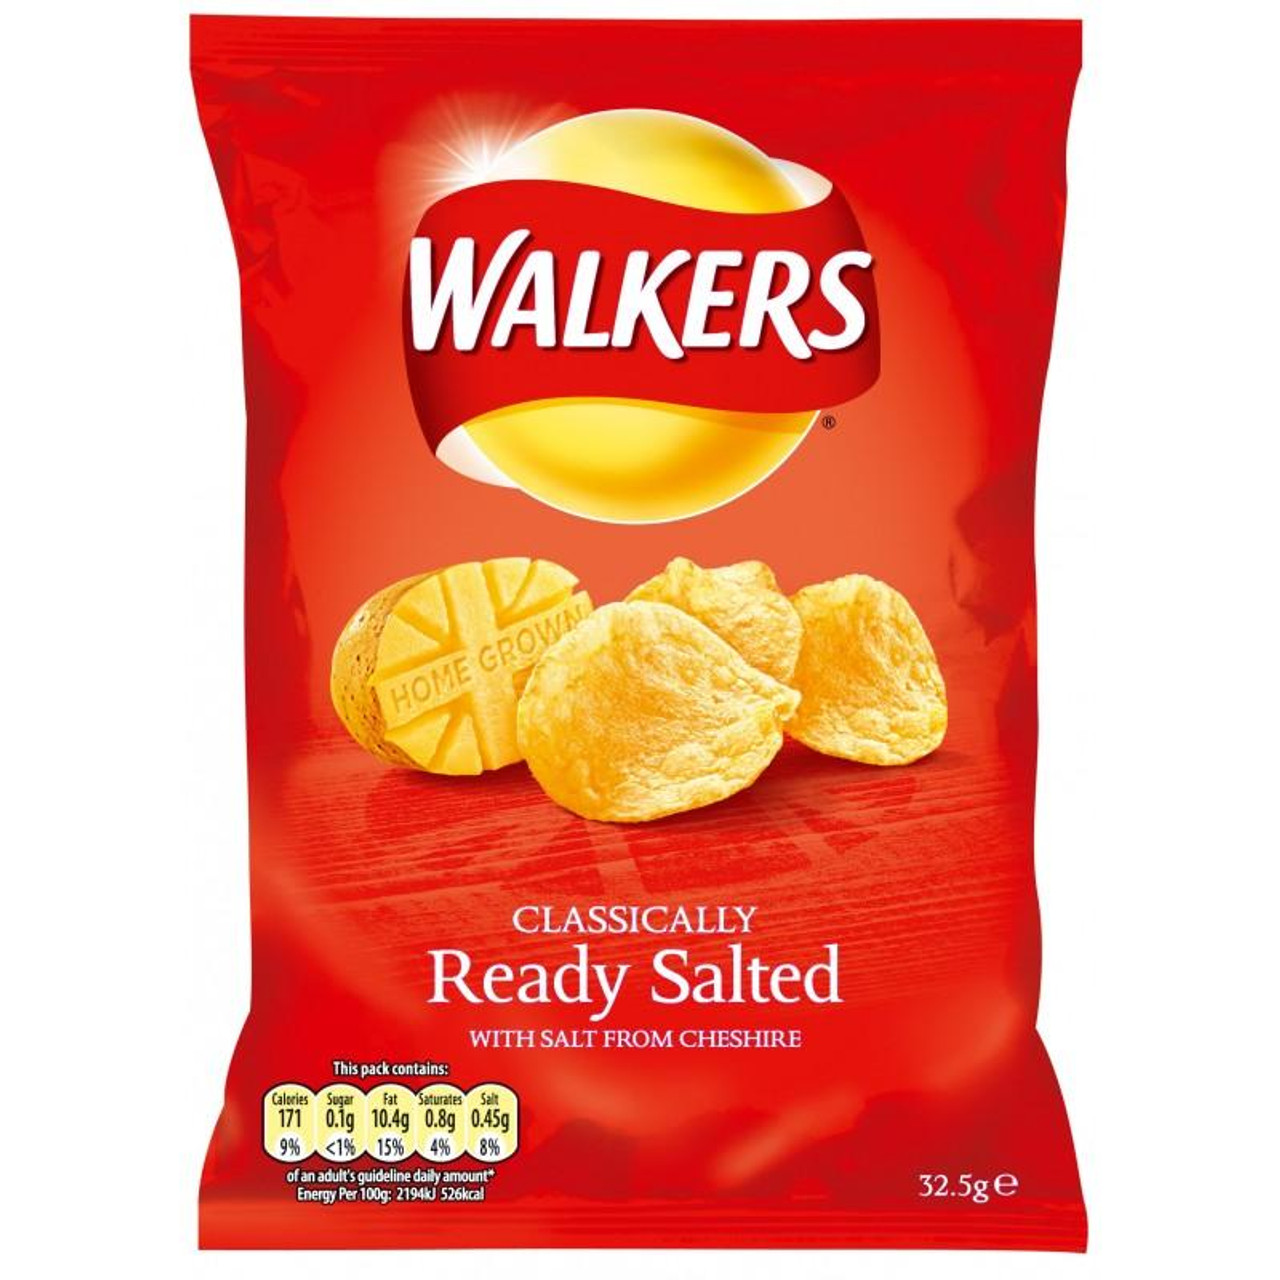 Walkers Crisps - Ready Salted, 32.5g